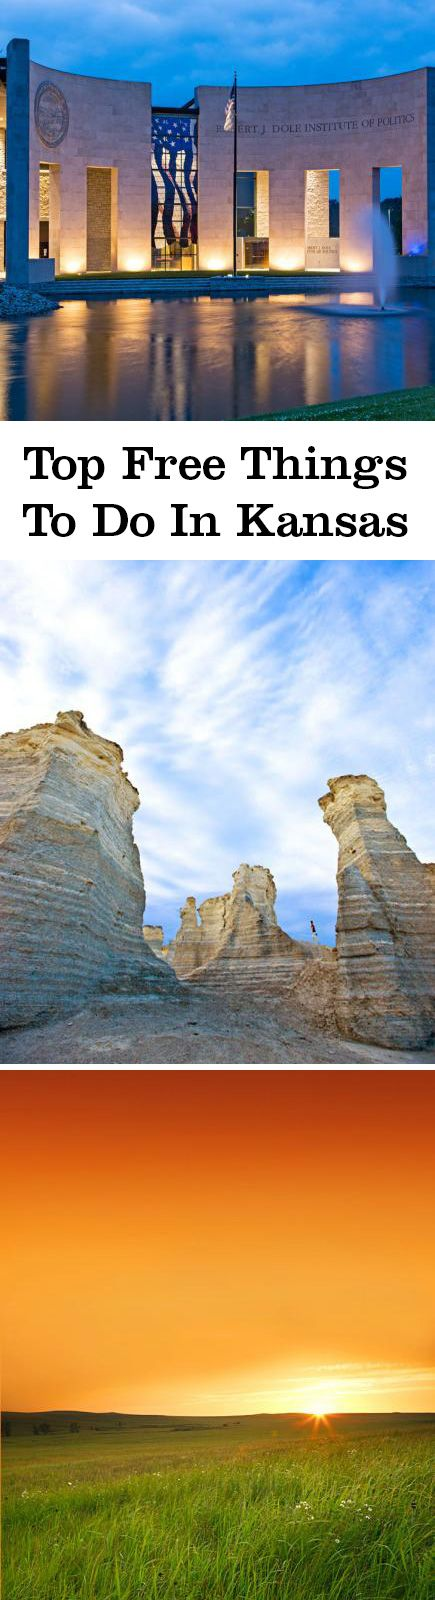 Explore free Kansas attractions including the state capitol, Tallgrass Prairie National Preserve, the Fort Scott National Historic Site and Monument Rocks.